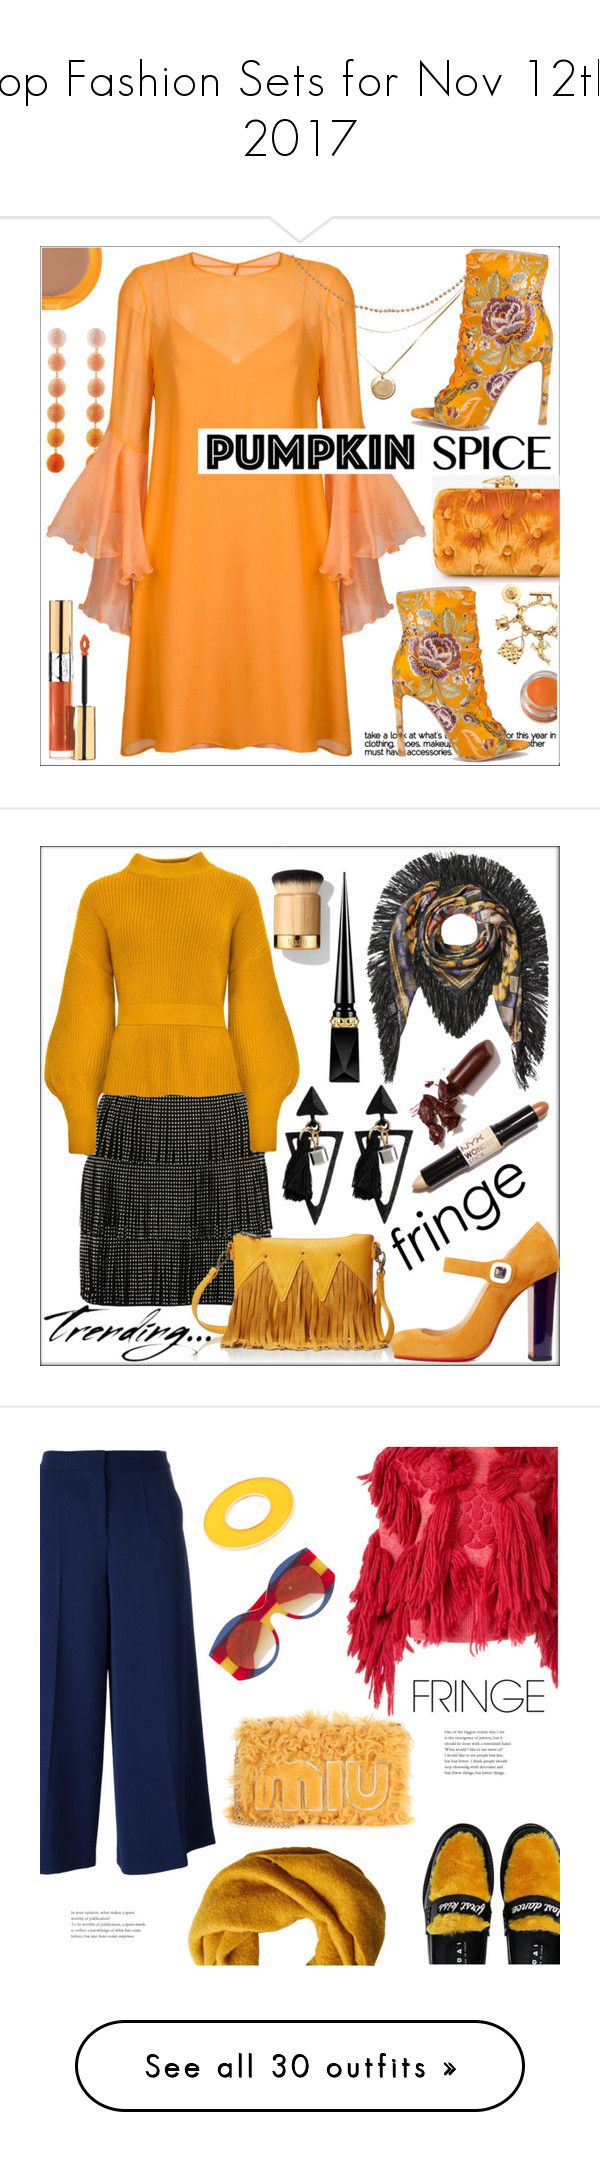 """""""Top Fashion Sets for Nov 12th, 2017"""" by polyvore ❤ liked on Polyvore featuring Benedetta Bruzziches, Chanel, Rebecca de Ravenel, Galvan, Yves Saint Laurent, NYX, Shiseido, fashionset, pumpkinspice and Etro"""